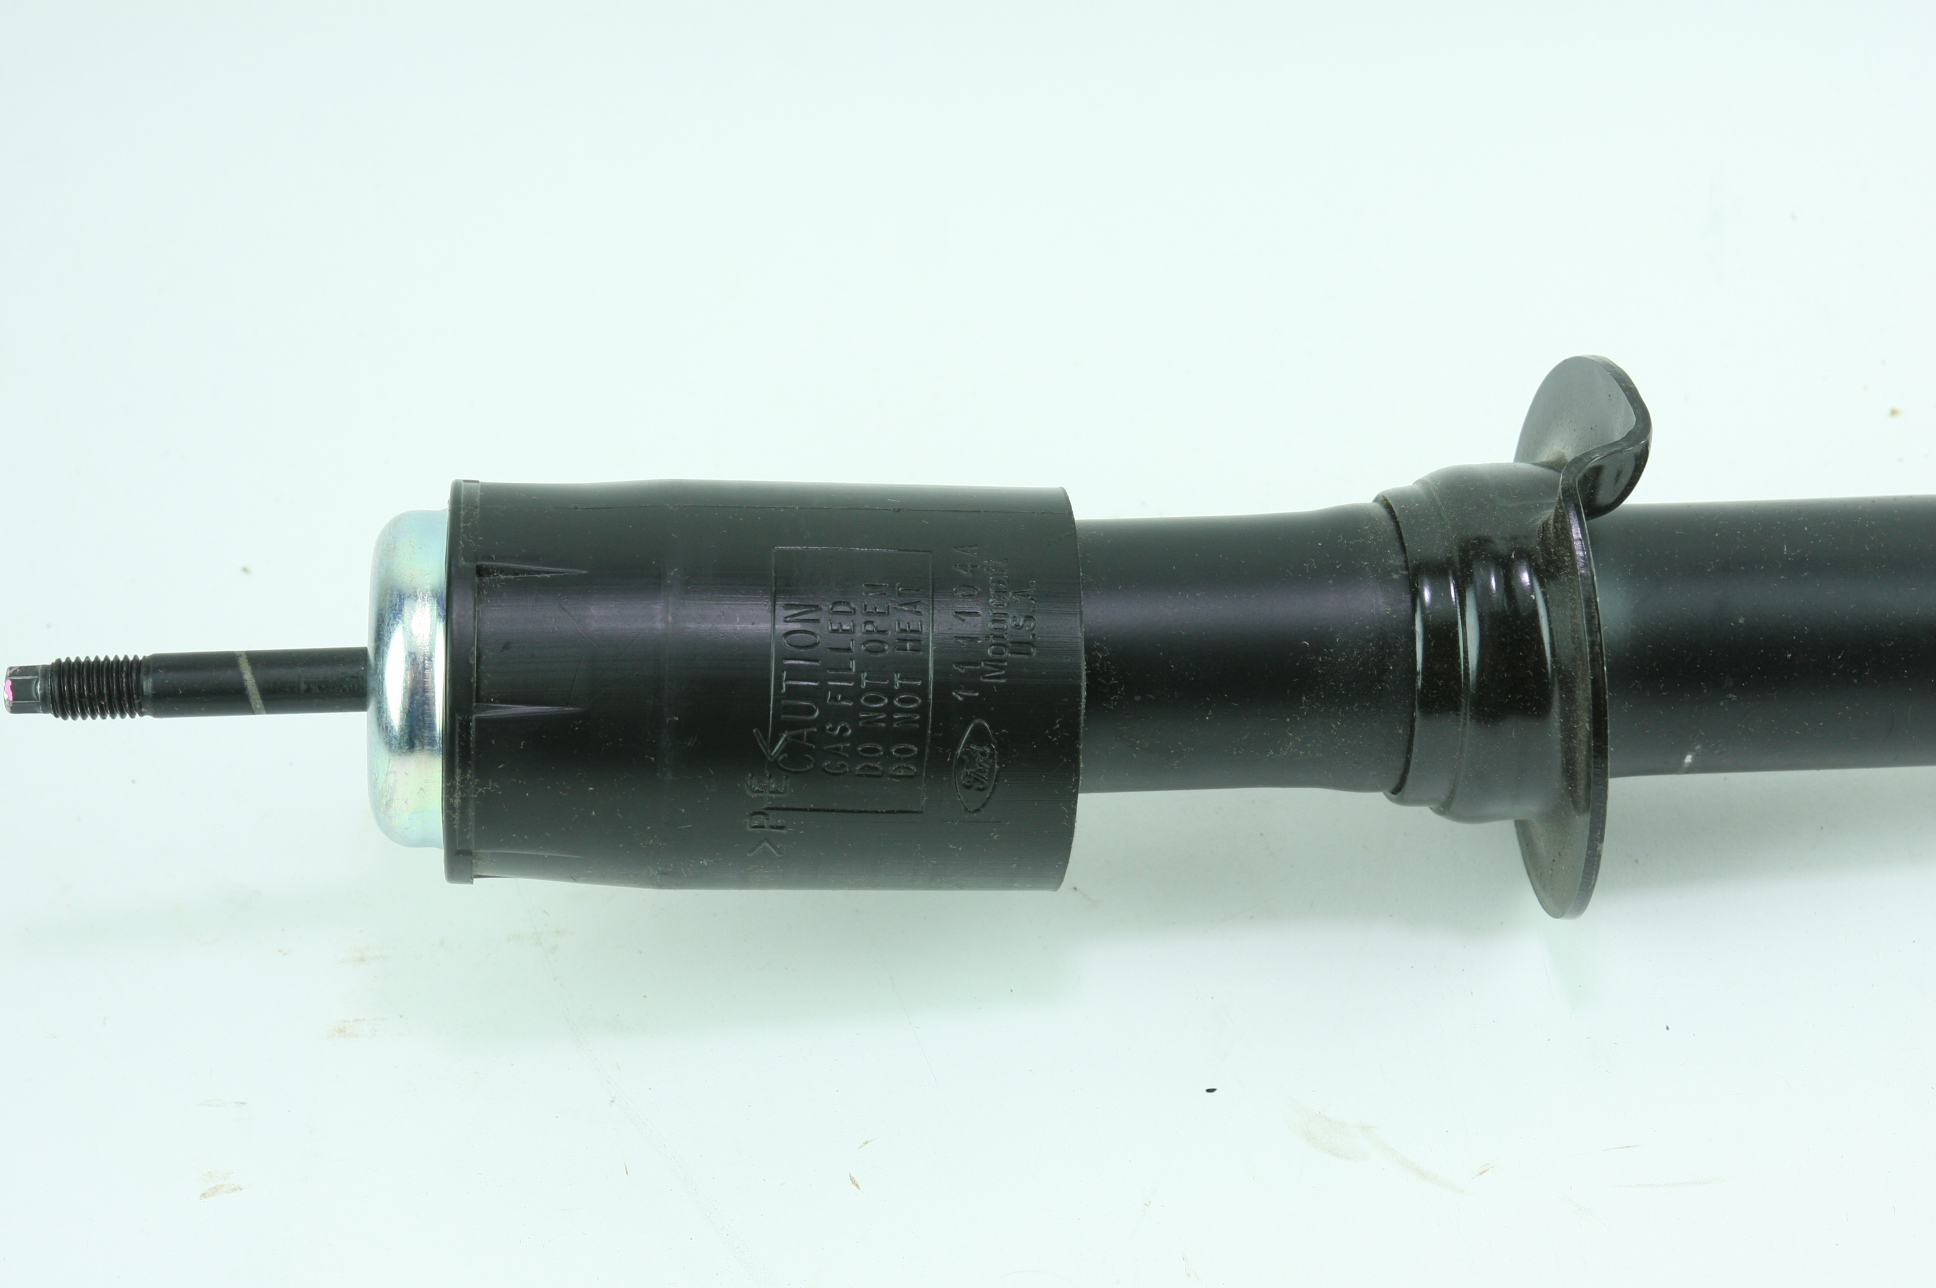 New OEM Motorcraft ASH399 Ford 3U2Z18124PAA Shock Absorber Front Free Shipping - image 4